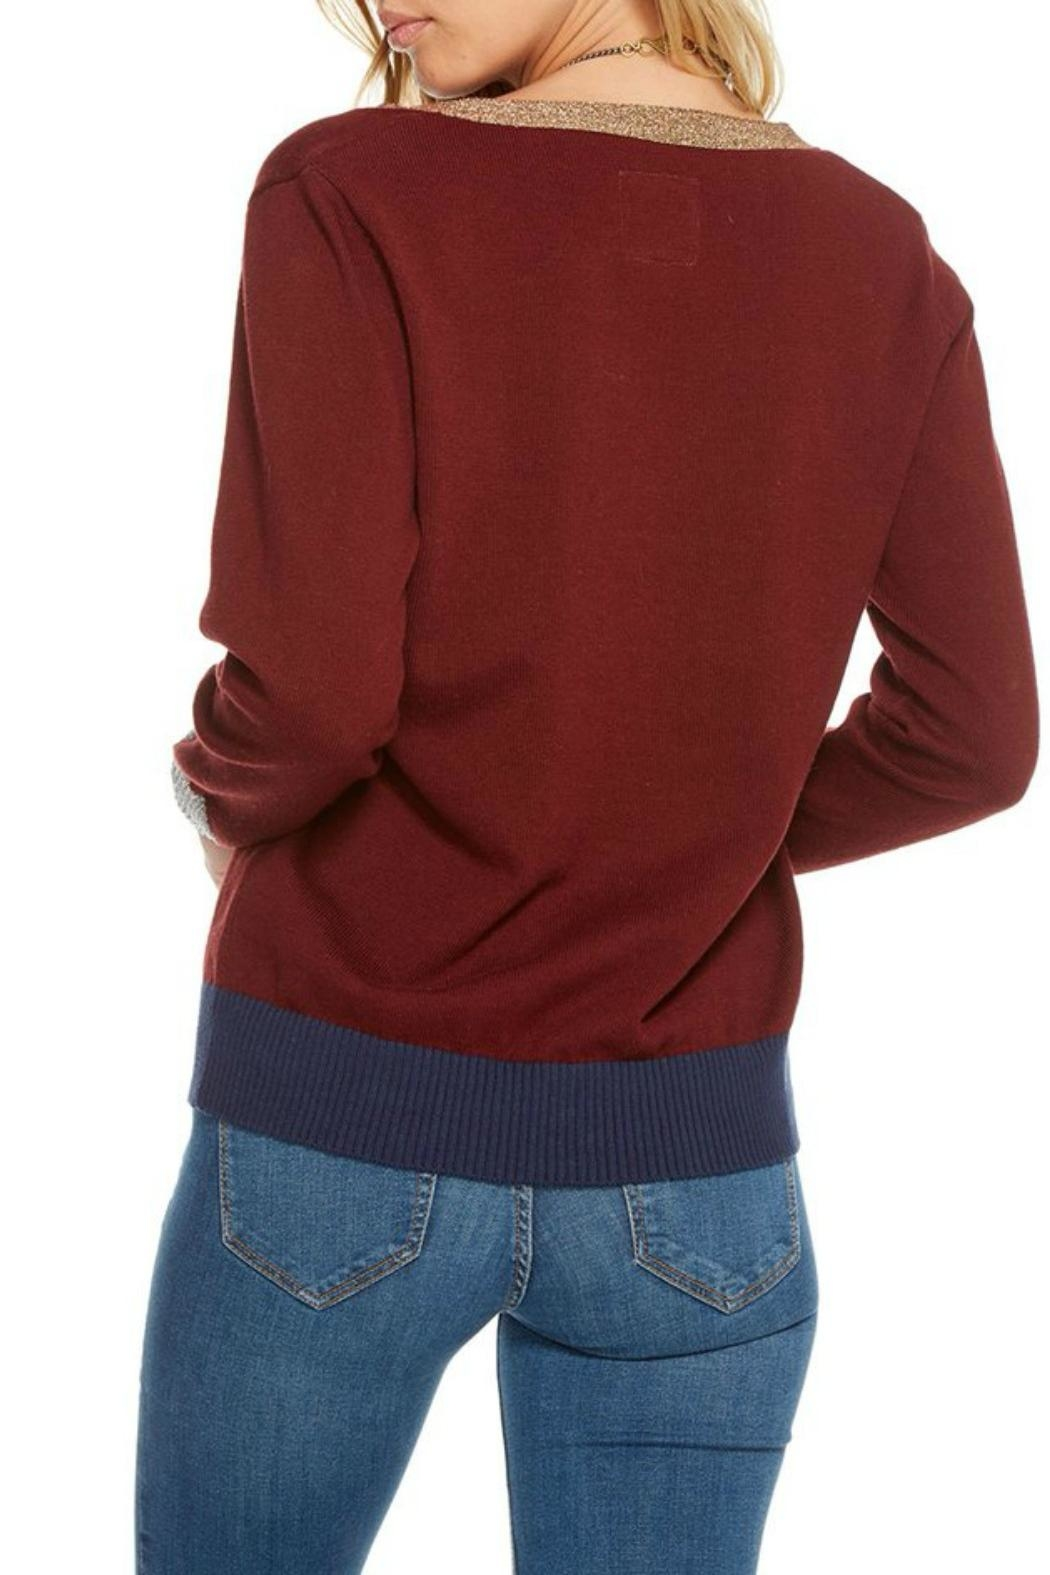 Chaser Cotton Cashmere Cardigan - Front Full Image